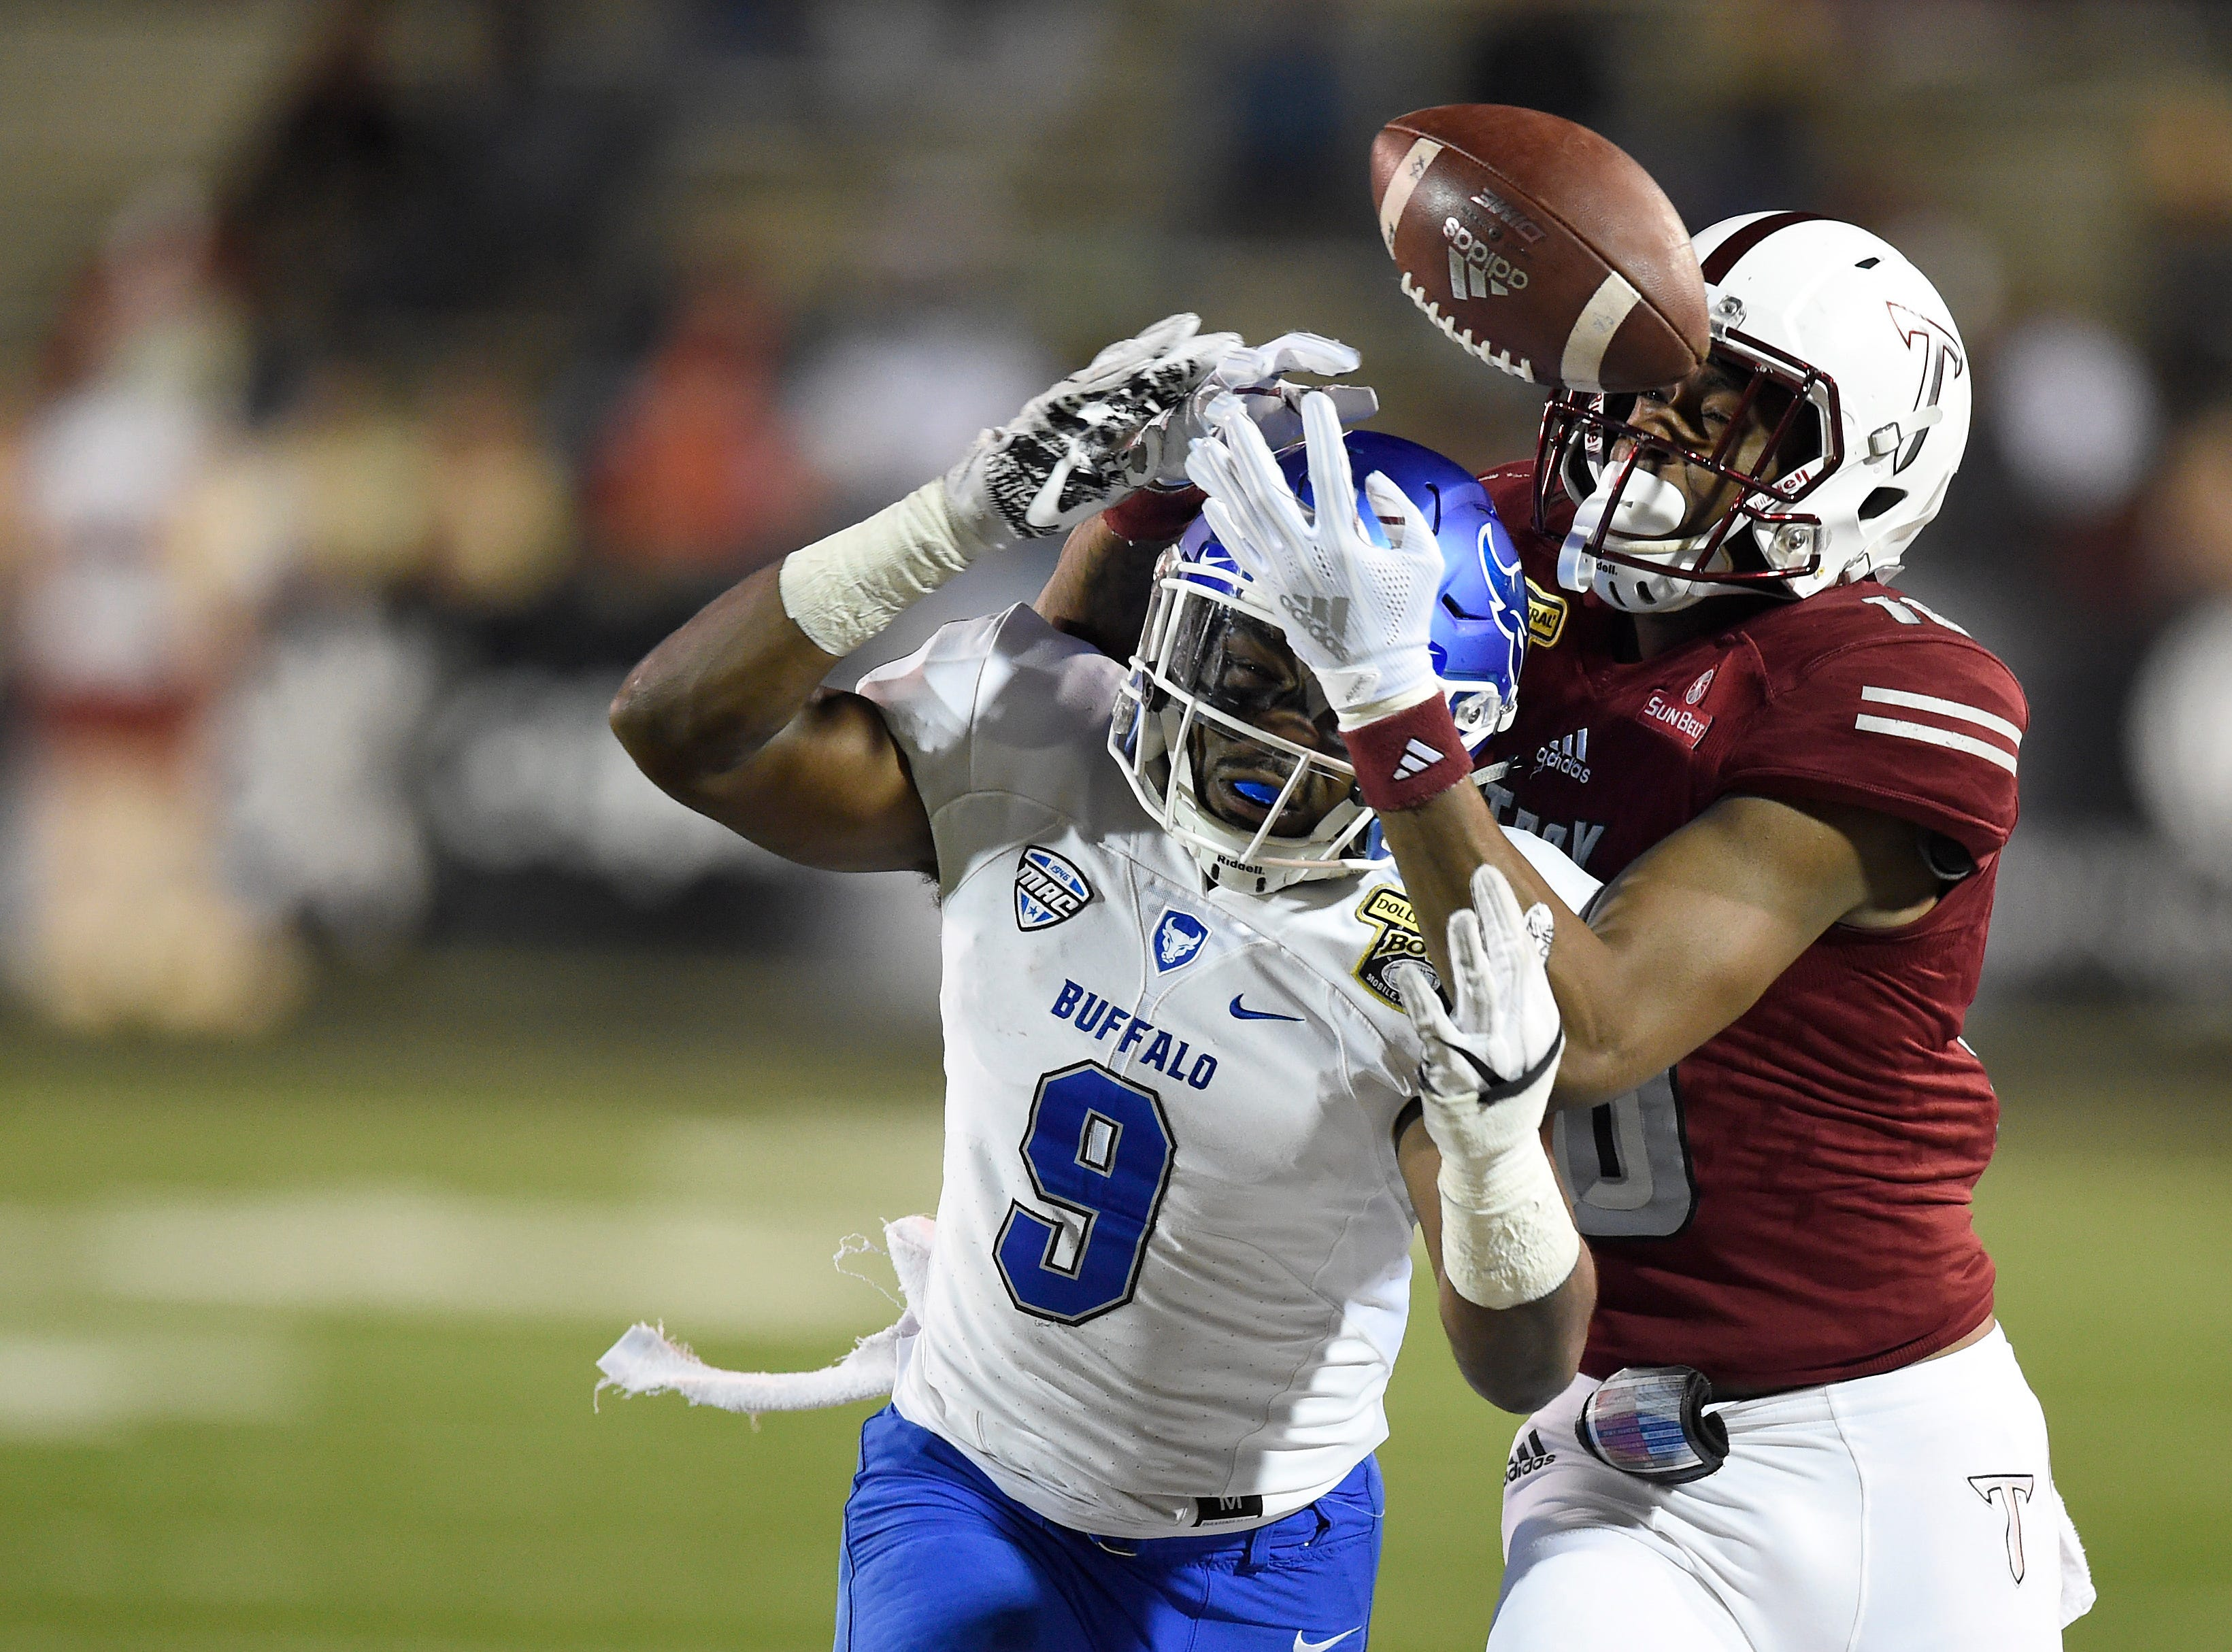 Buffalo Bulls cornerback Tatum Slack (9) breaks up an intended pass for Troy Trojans wide receiver Richard Hallman (10) during the third quarter of the Dollar General Bowl.